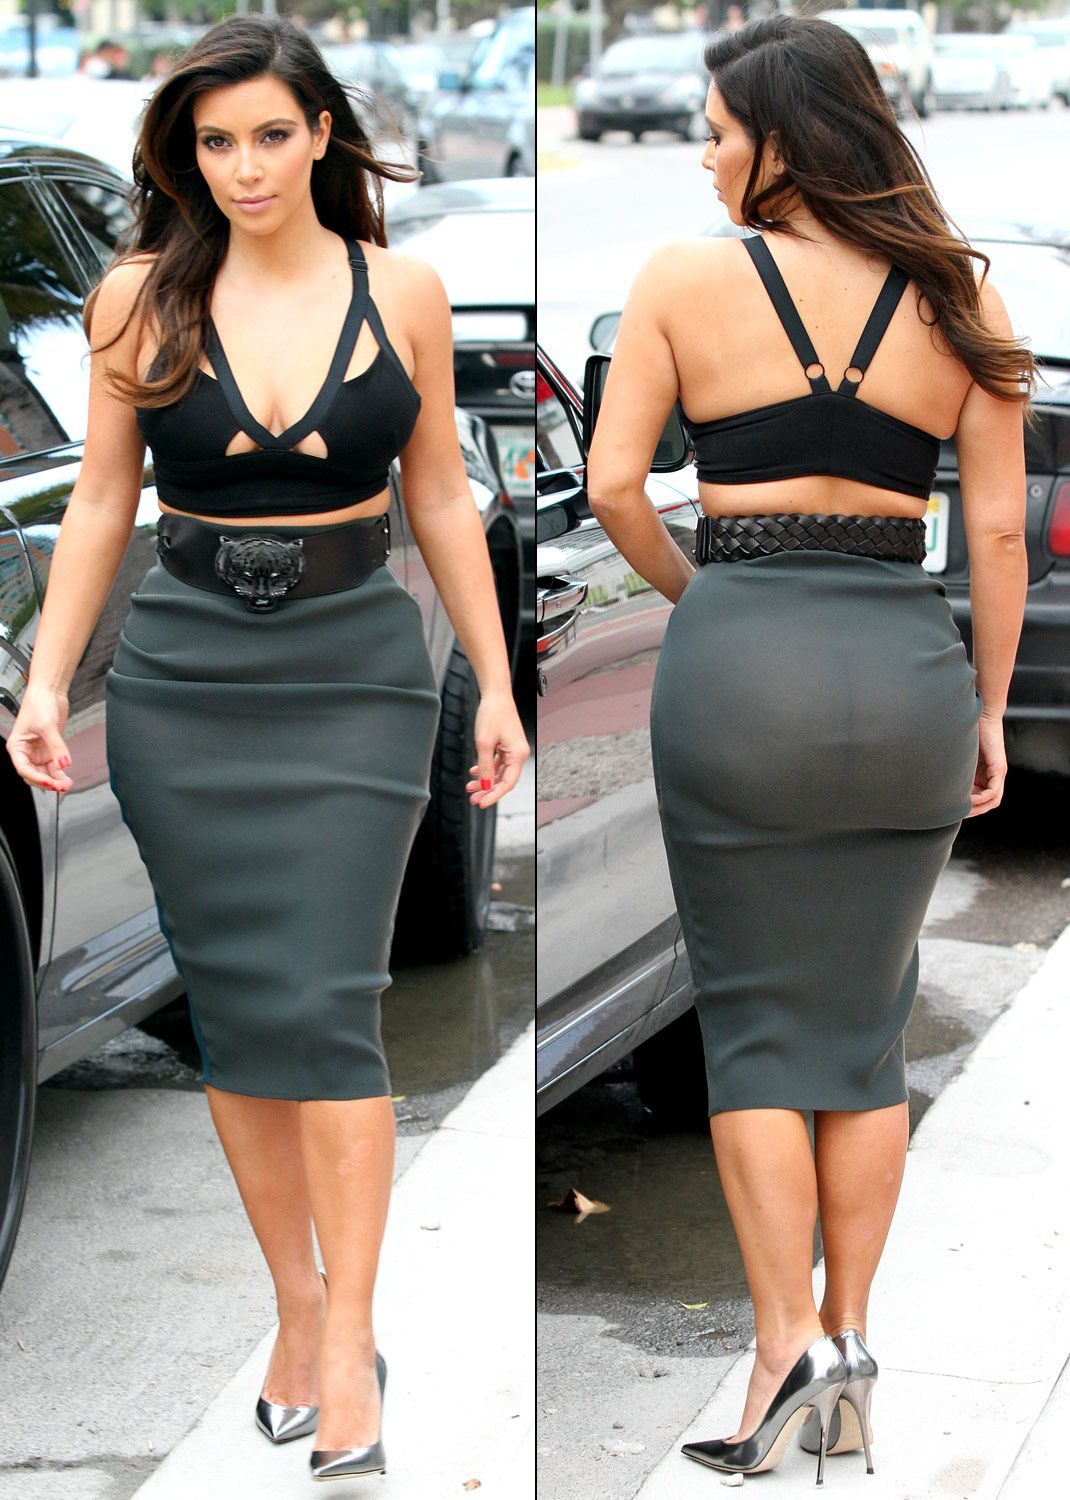 35595c1d1c Kim Kardashian Wears Tight See-Through Skirt, Bra Top on Date With ...